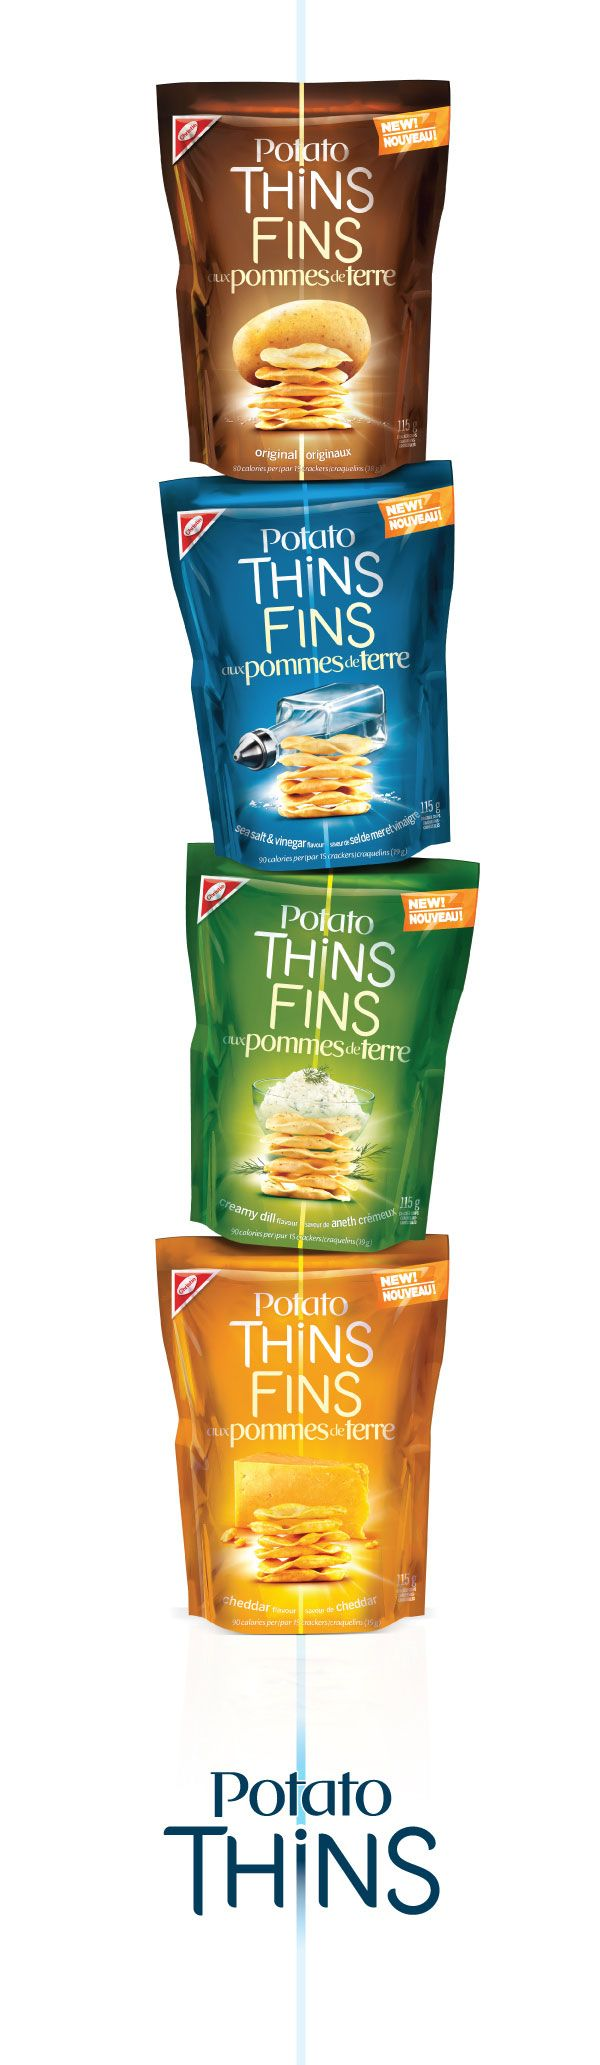 packaging_snacks_papas_fritas_3